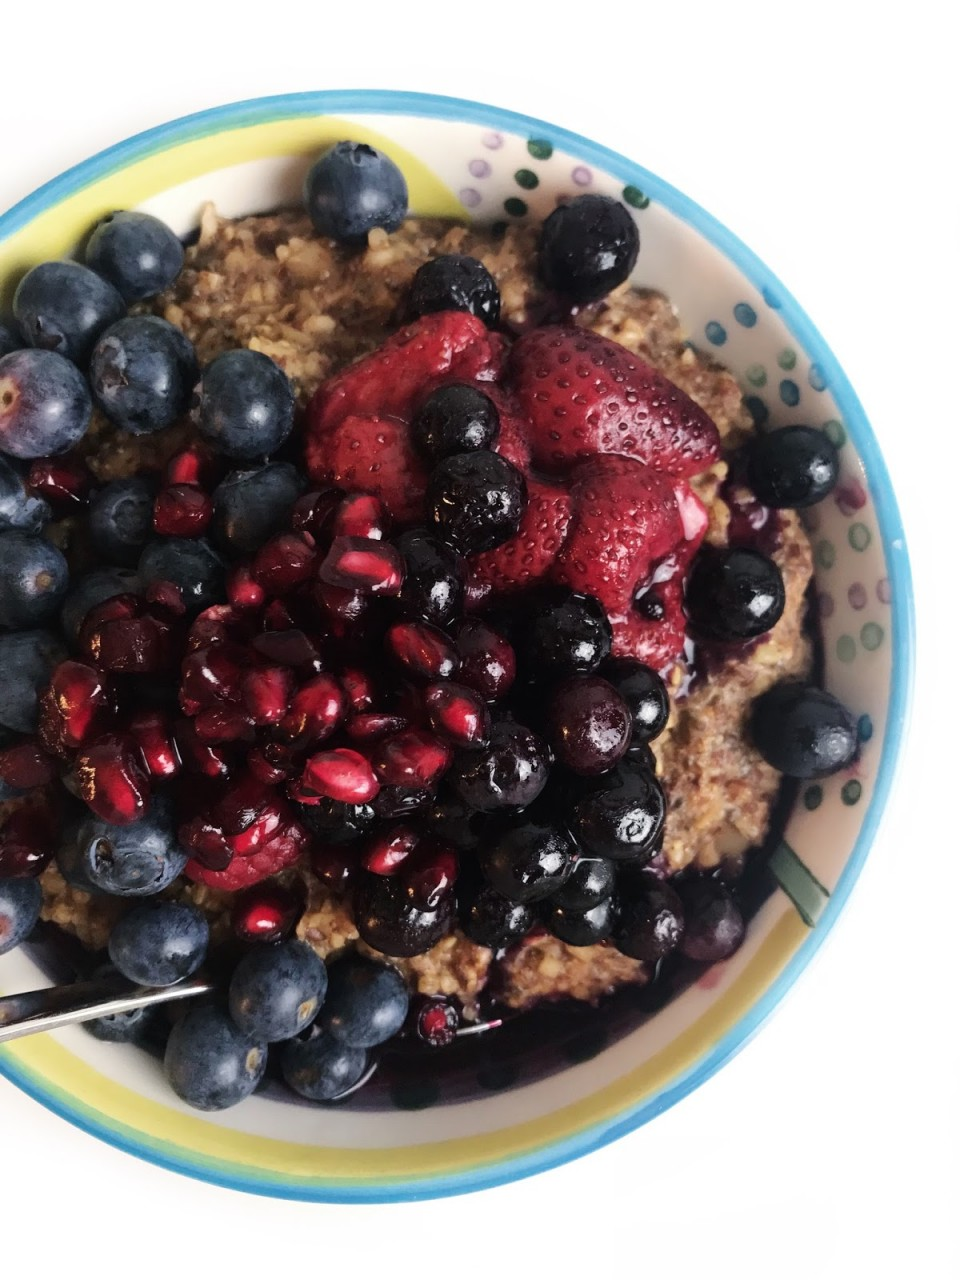 What I Eat in a Week: Oatmeal, Smoothies + French Fries